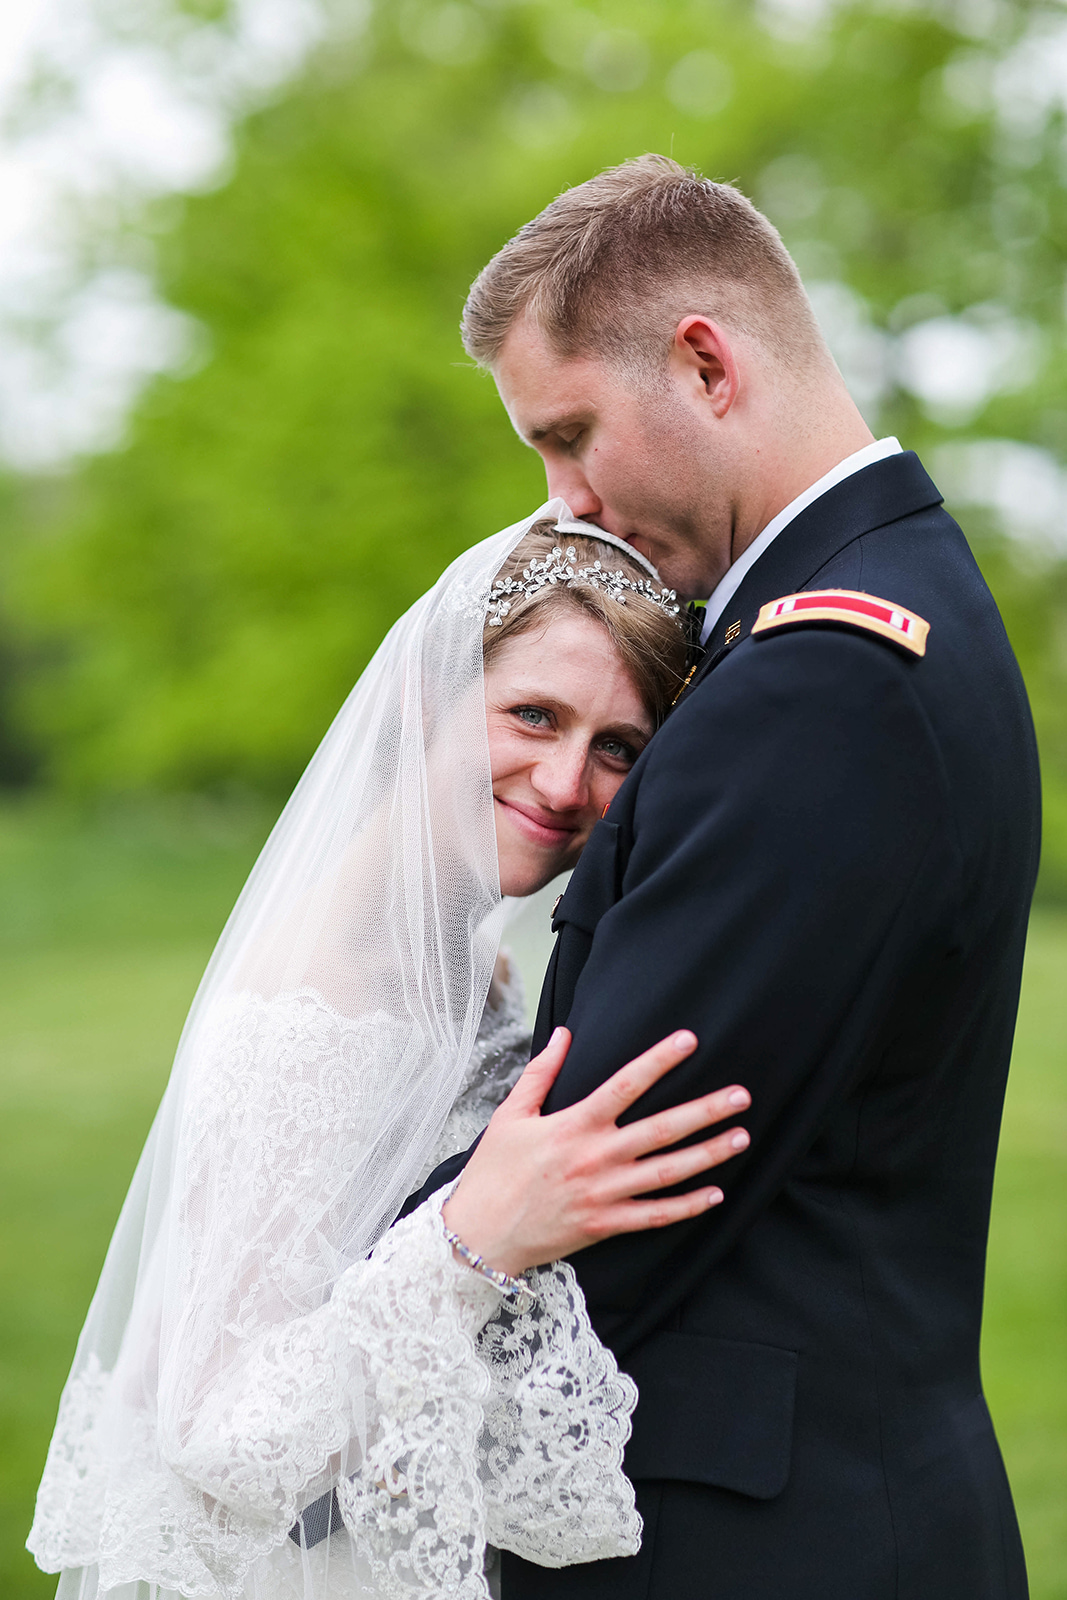 A Classic Indianapolis Military Wedding - Cathedral Wedding - The Overwhelmed Bride Wedding Blog